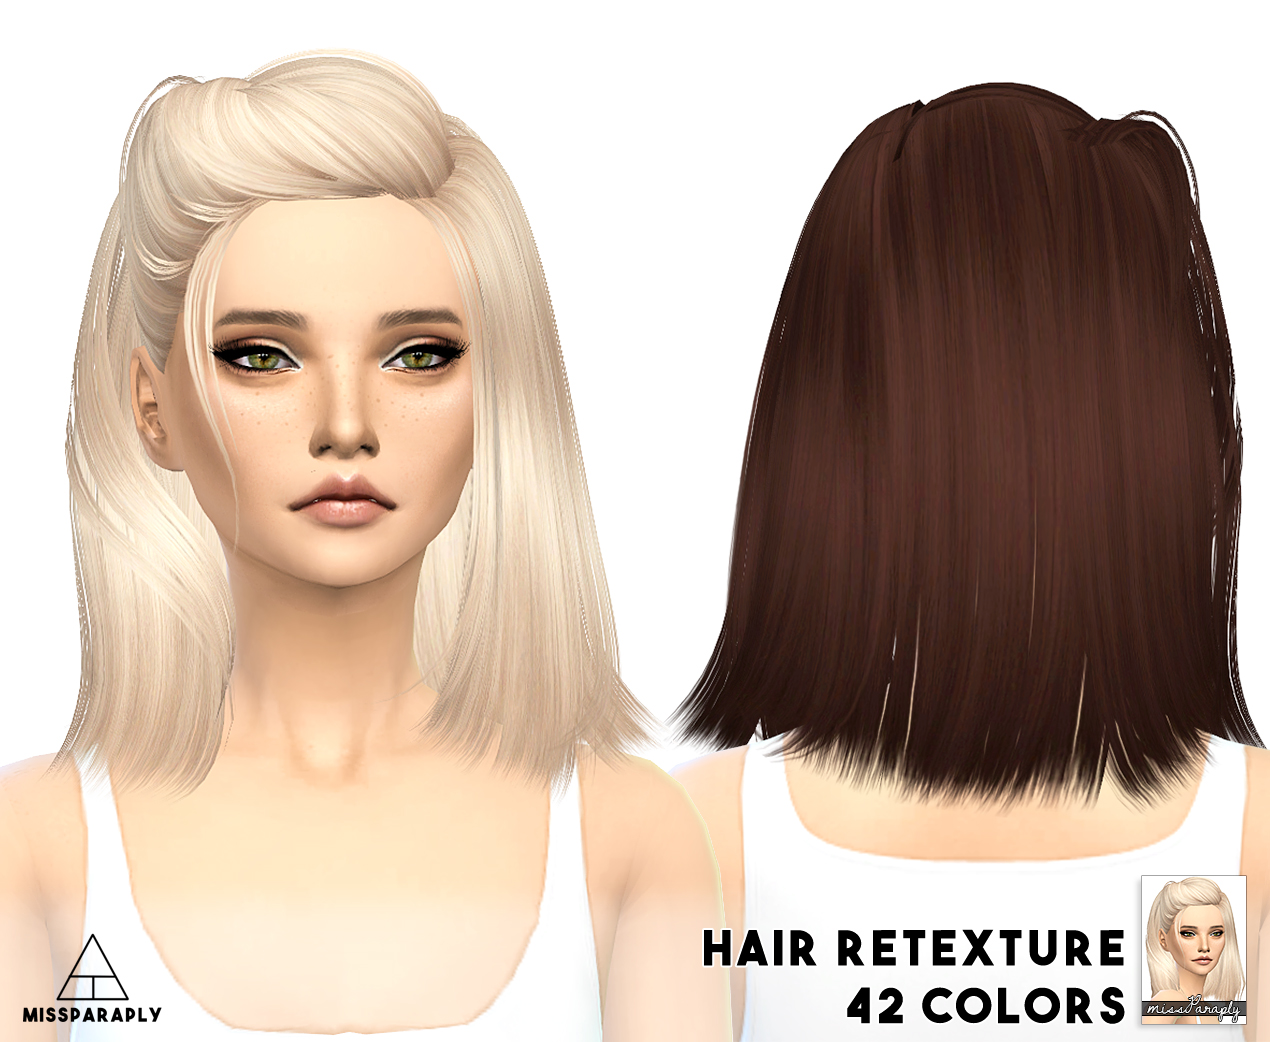 My Sims 4 Blog Skysims Hair Retexture For Females By